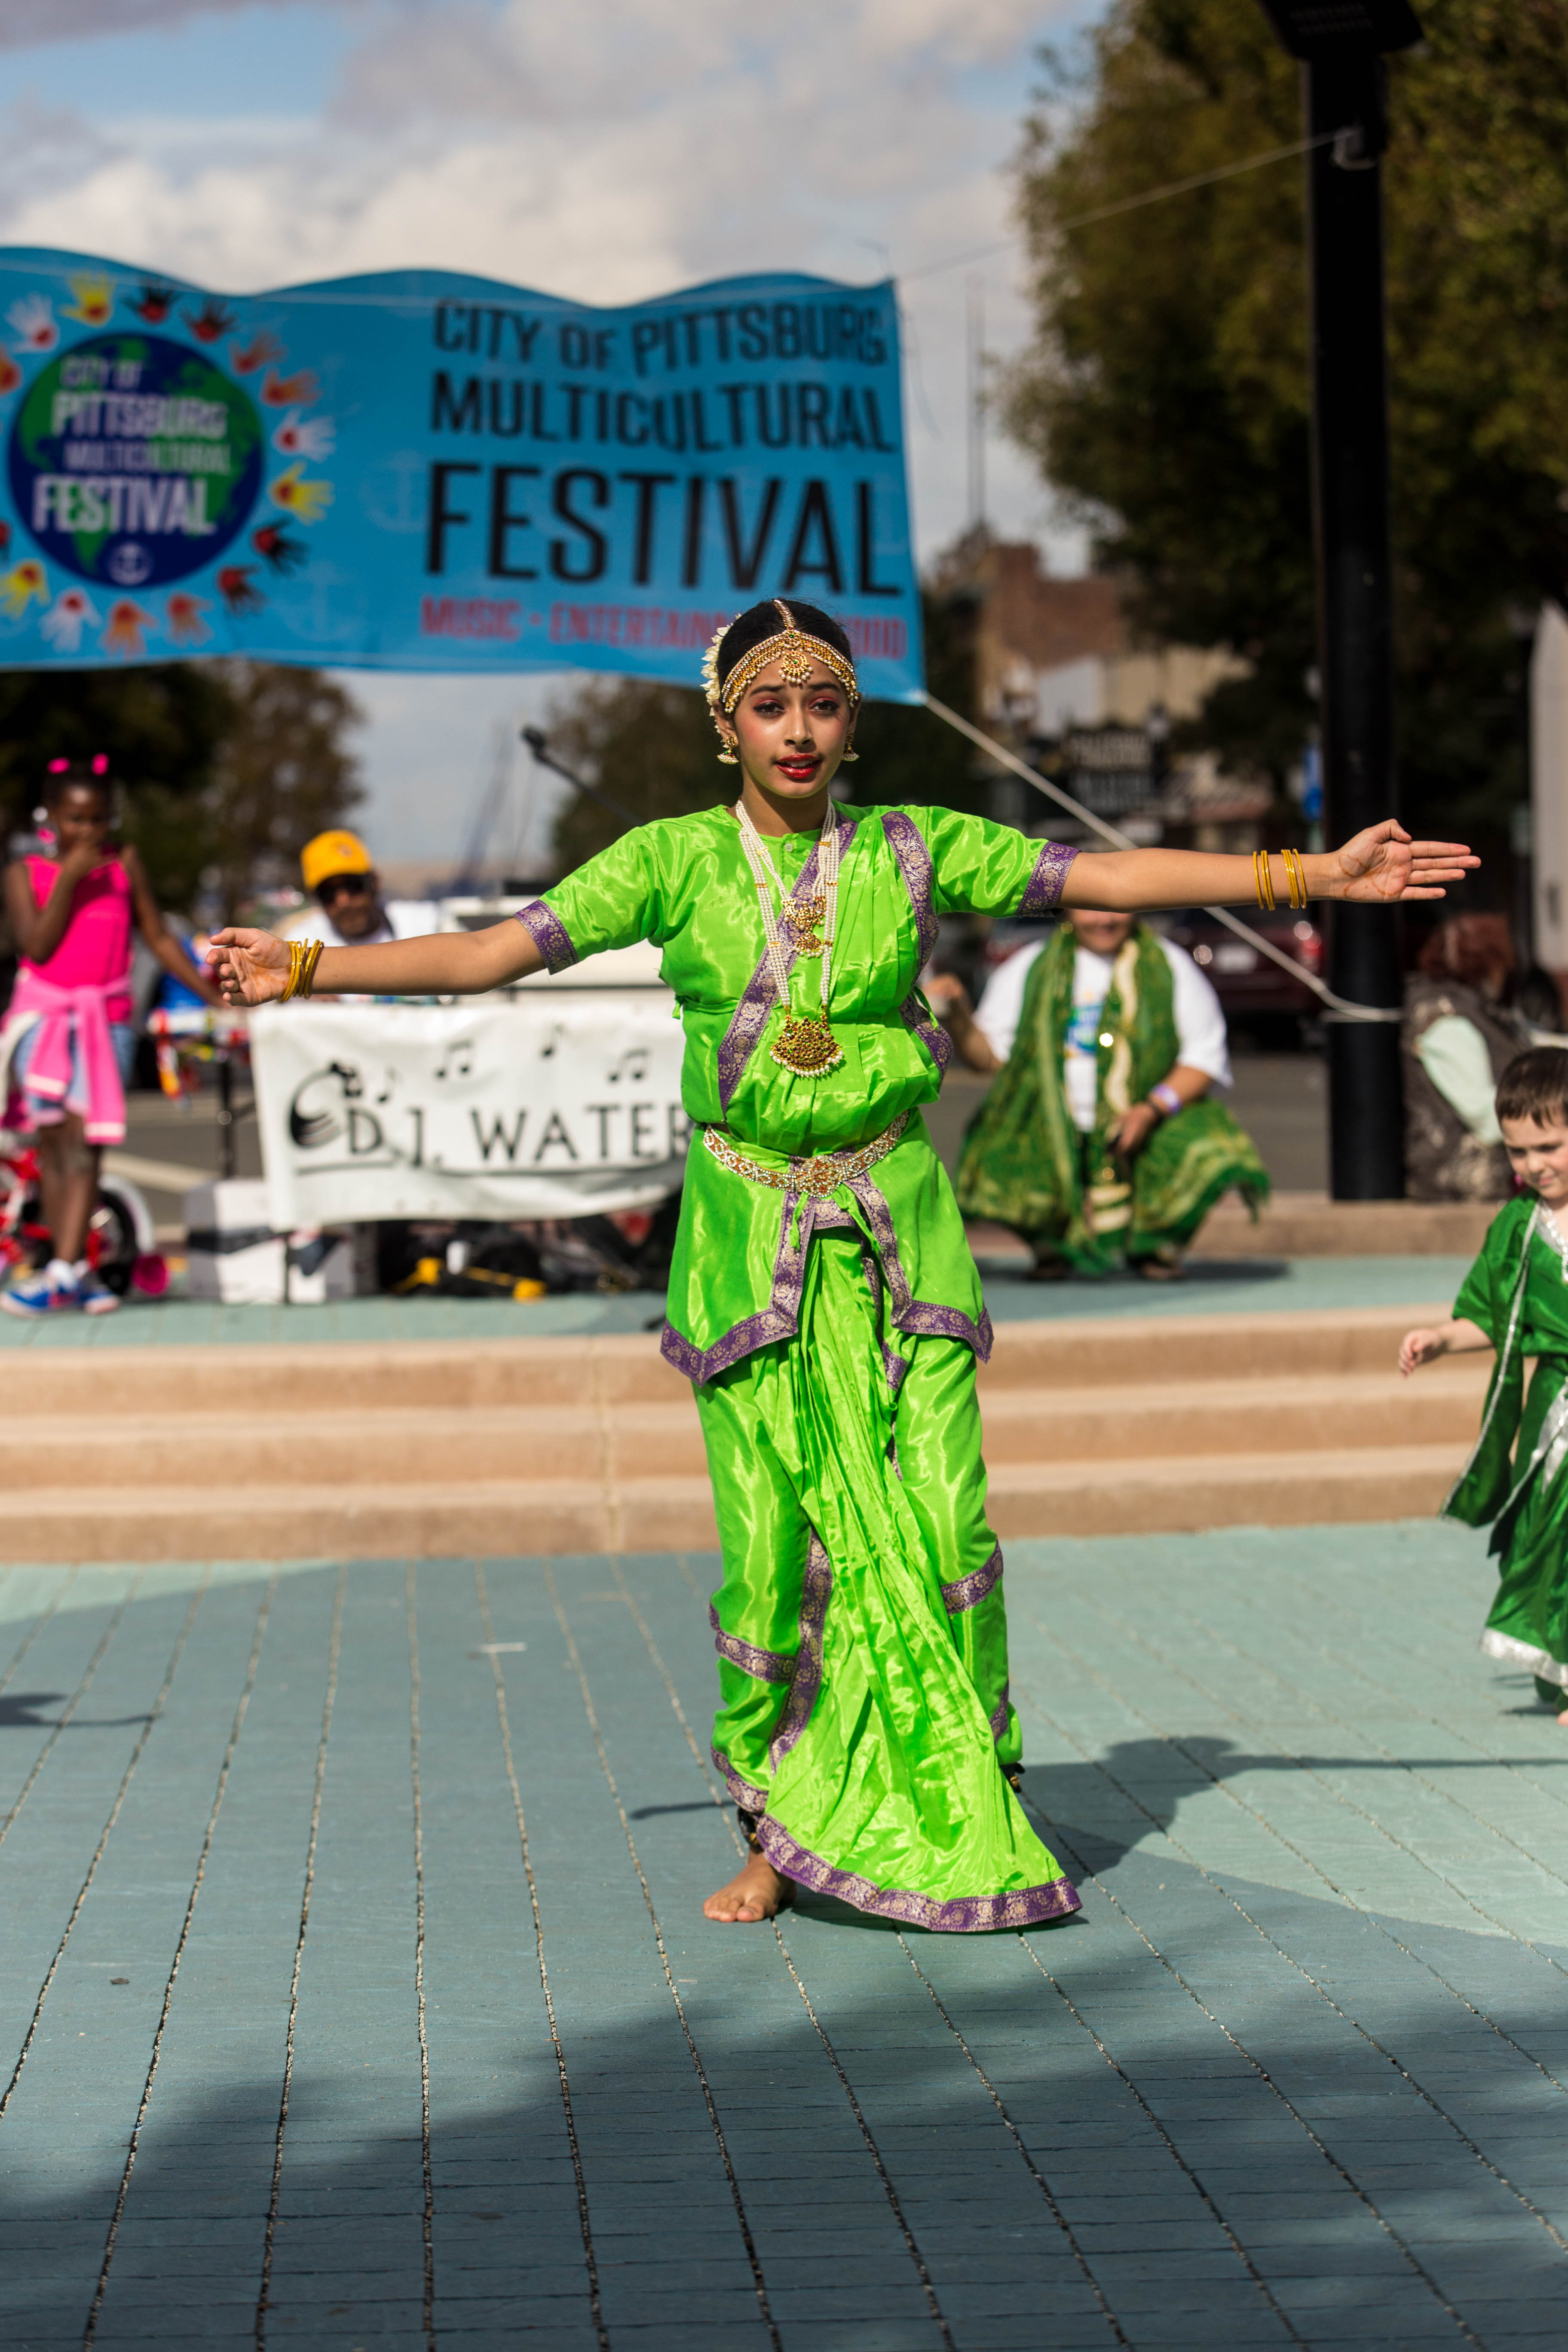 CITY_PITTSBURG_MULTICULTURAL_OCTOBER_2016 (538)